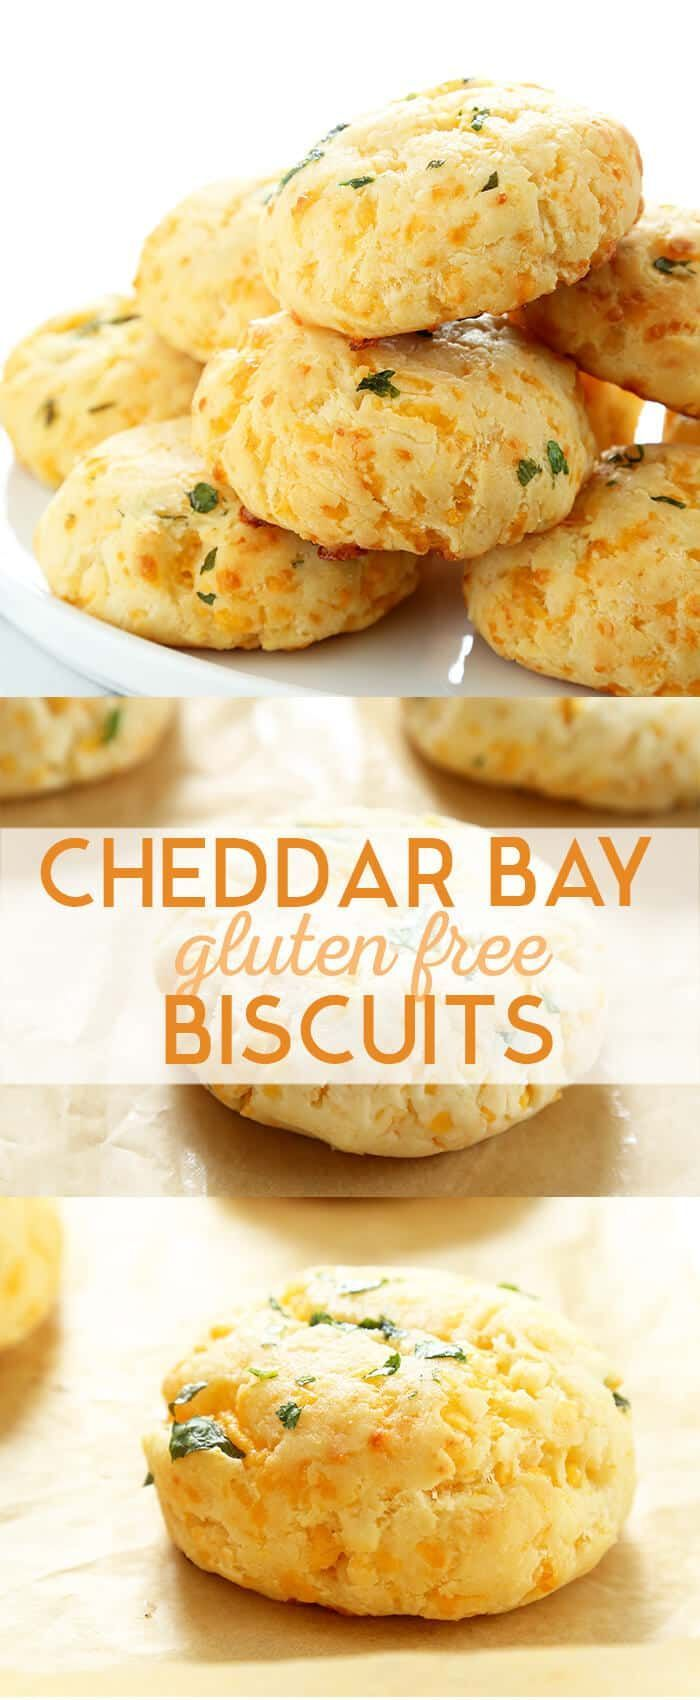 Light and flaky Gluten Free Cheddar Bay Biscuits. Simple drop biscuits that are super easy to throw together, and taste just like the famous Red Lobster Biscuits. Perfect for any meal! #glutenfreerecipes #biscuits #redlobster